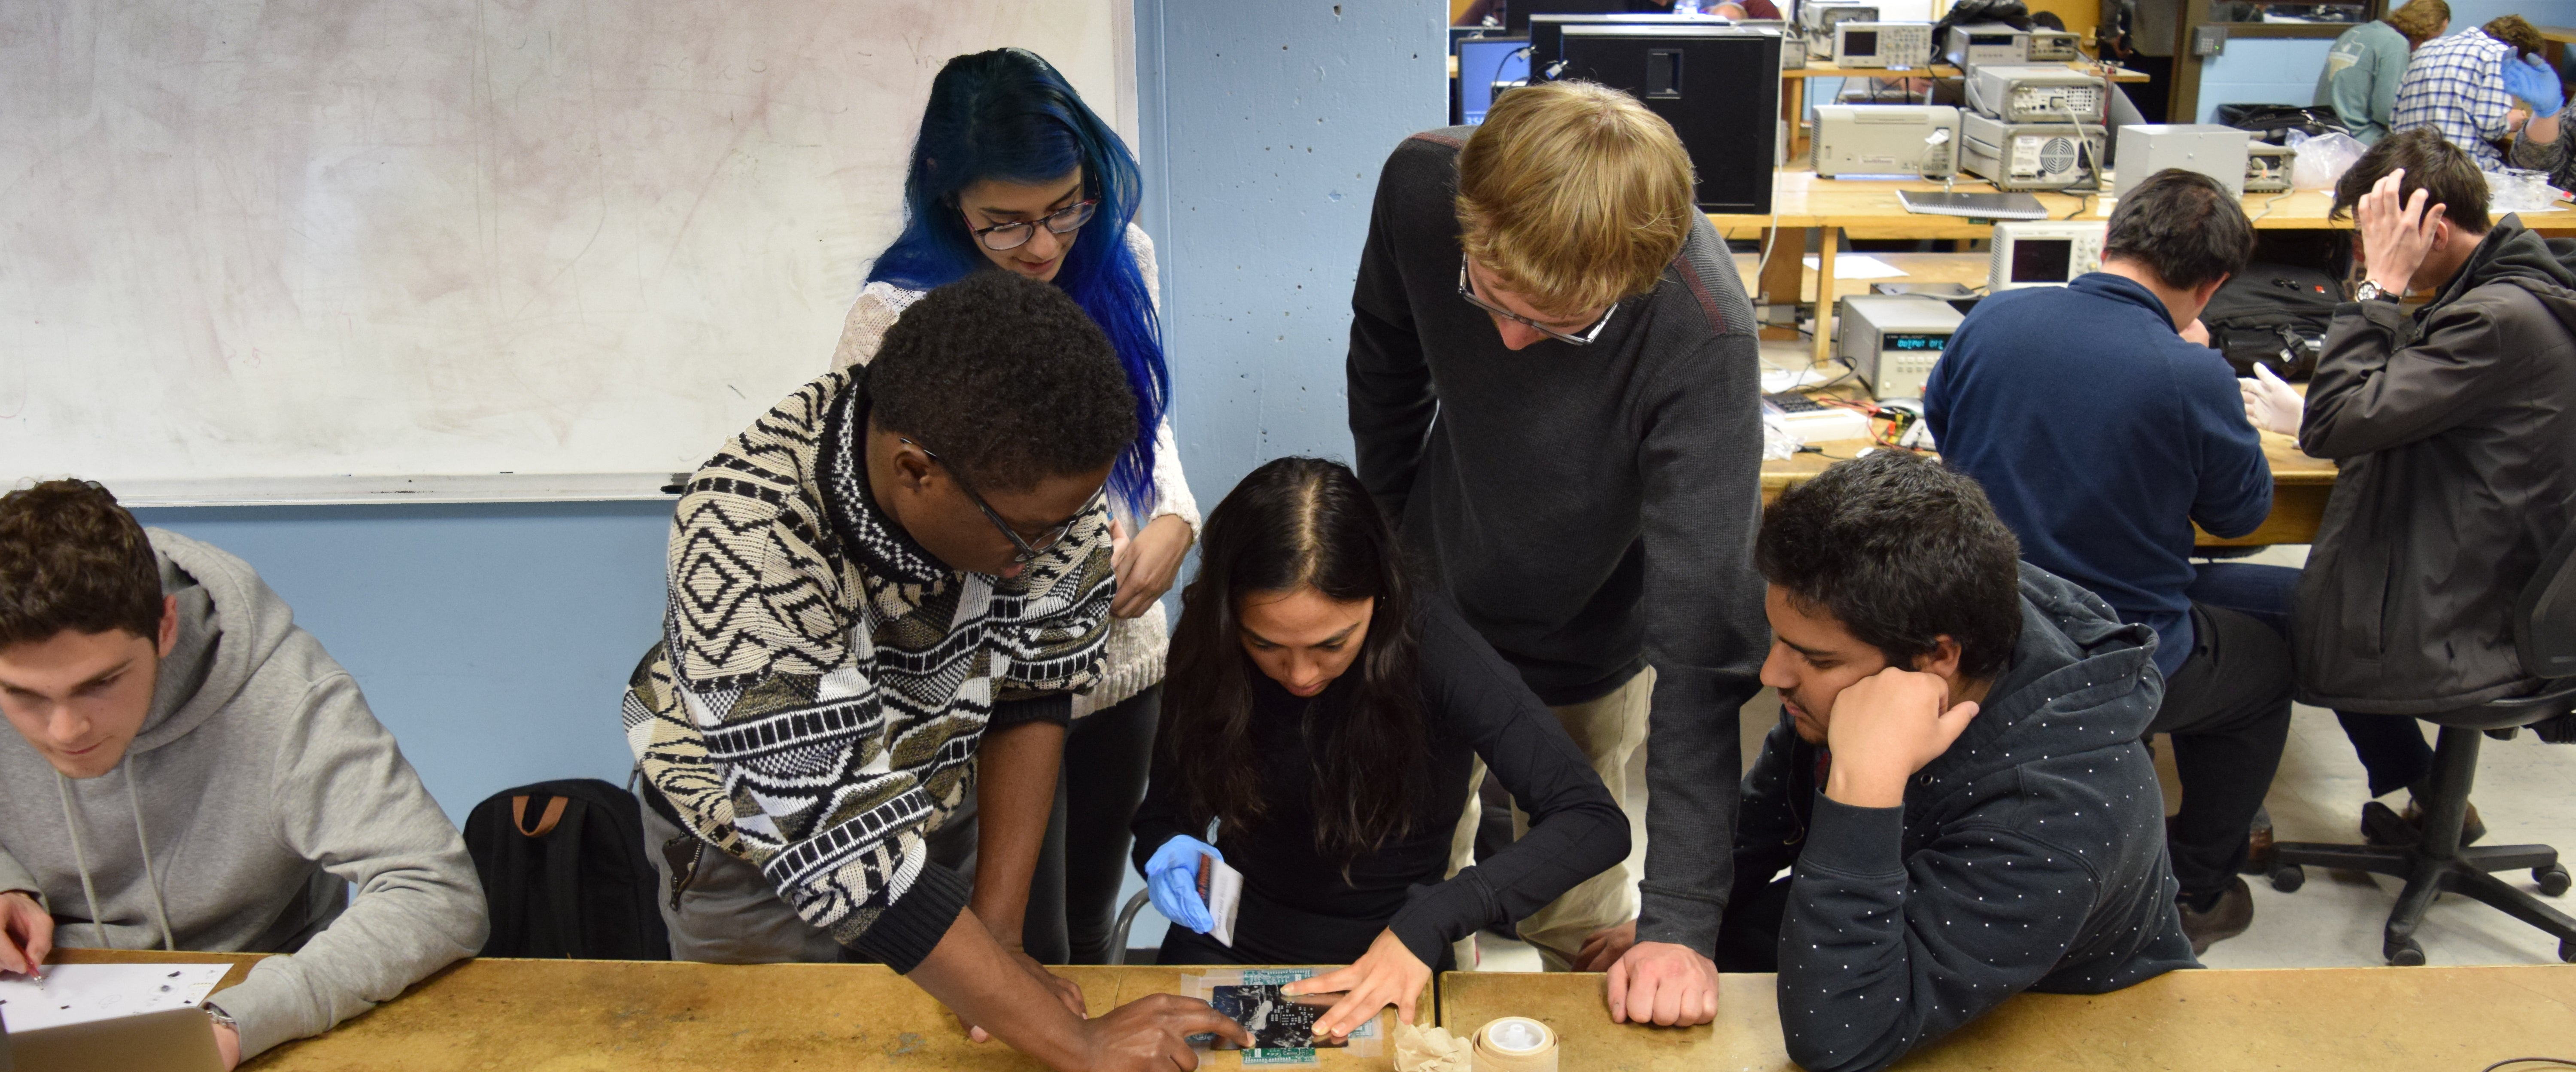 Students work on a group stencilling project during a lab section.